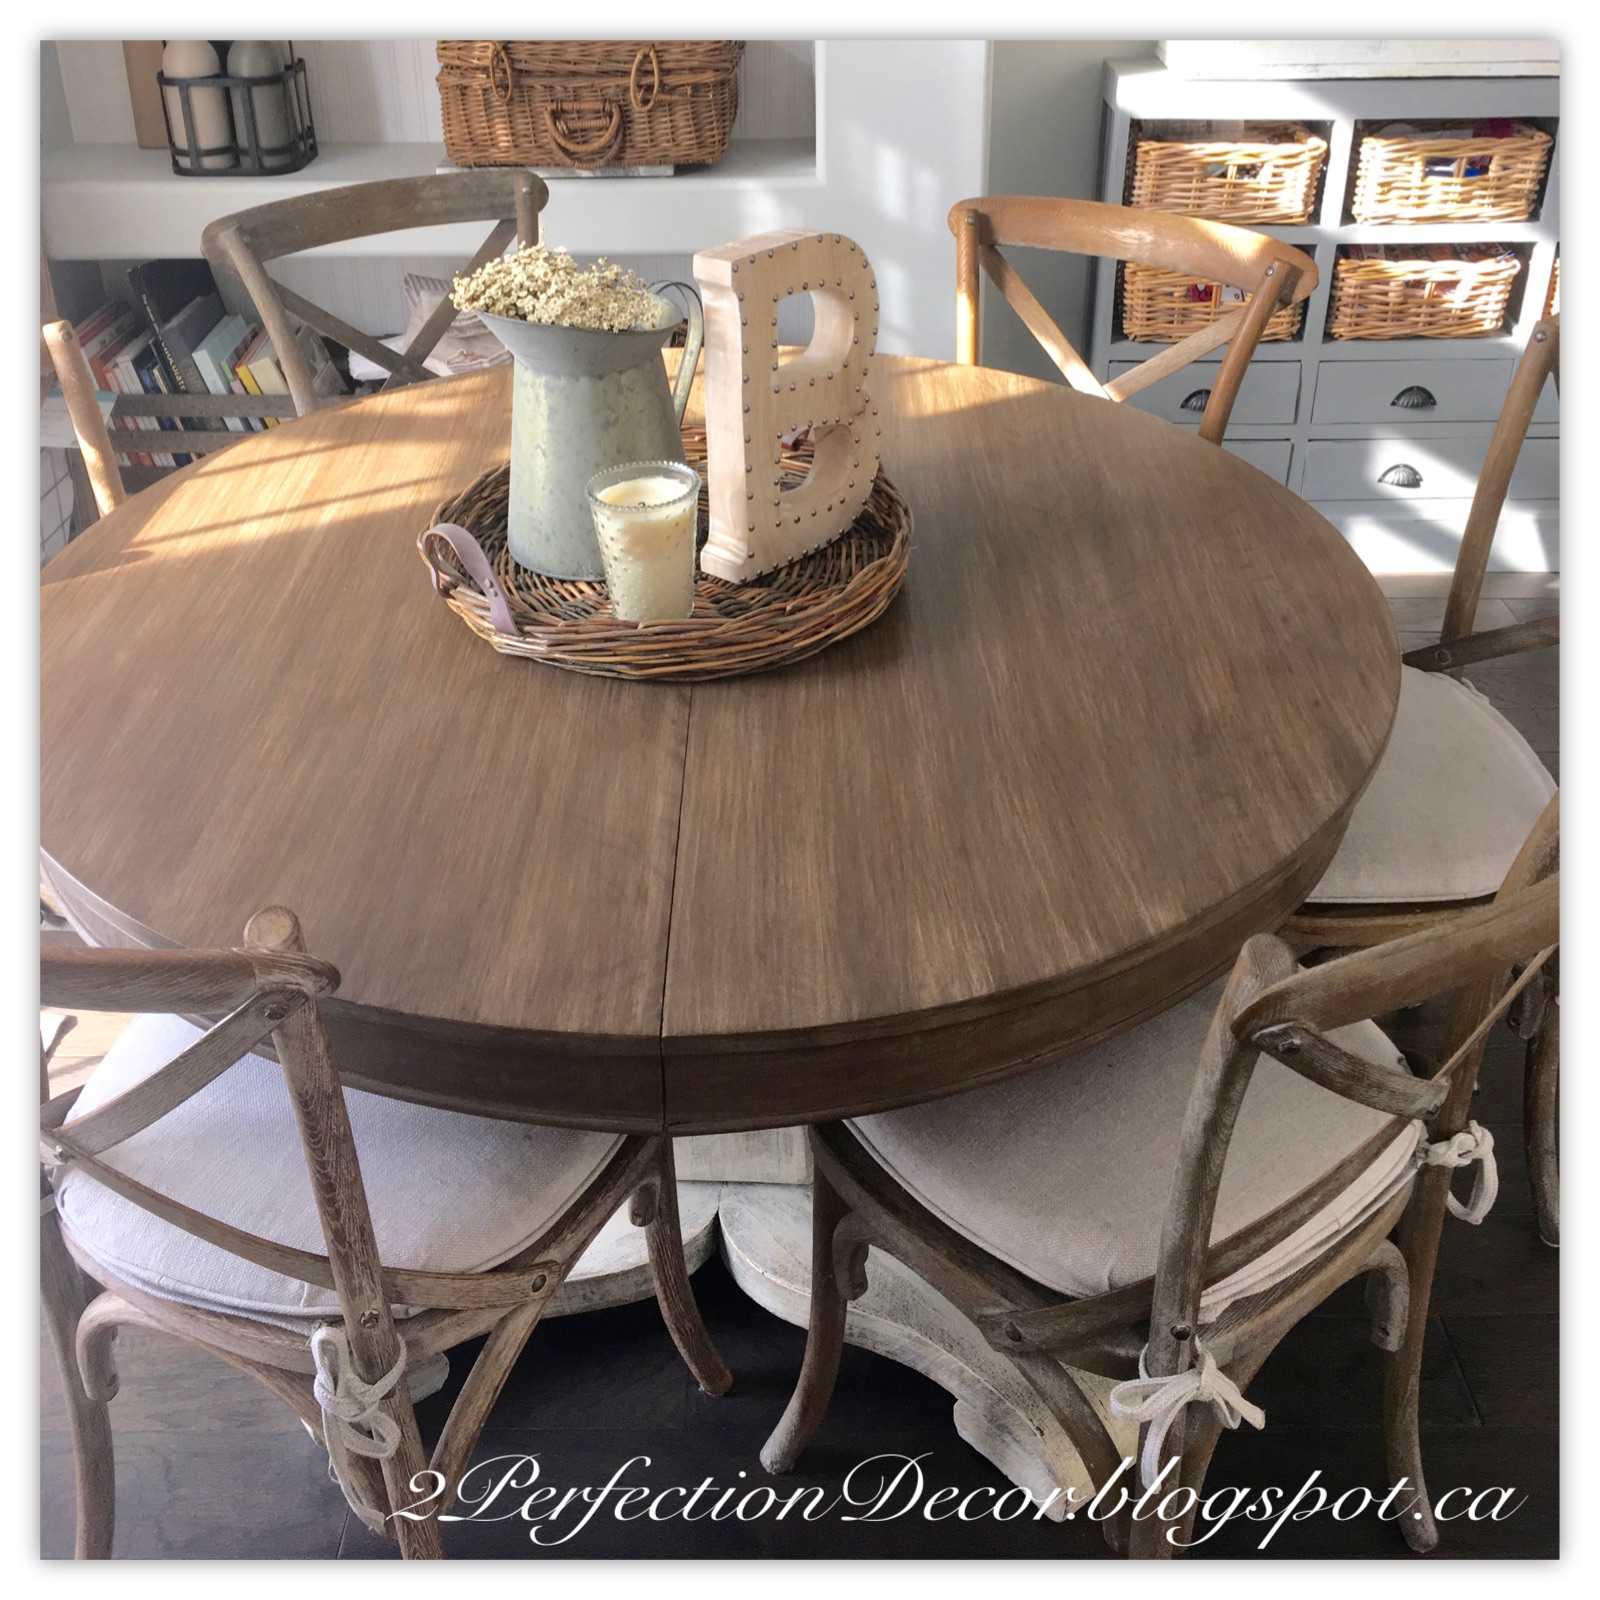 Decoration For Kitchen Table: 2Perfection Decor: Round Kitchen Table Makeover